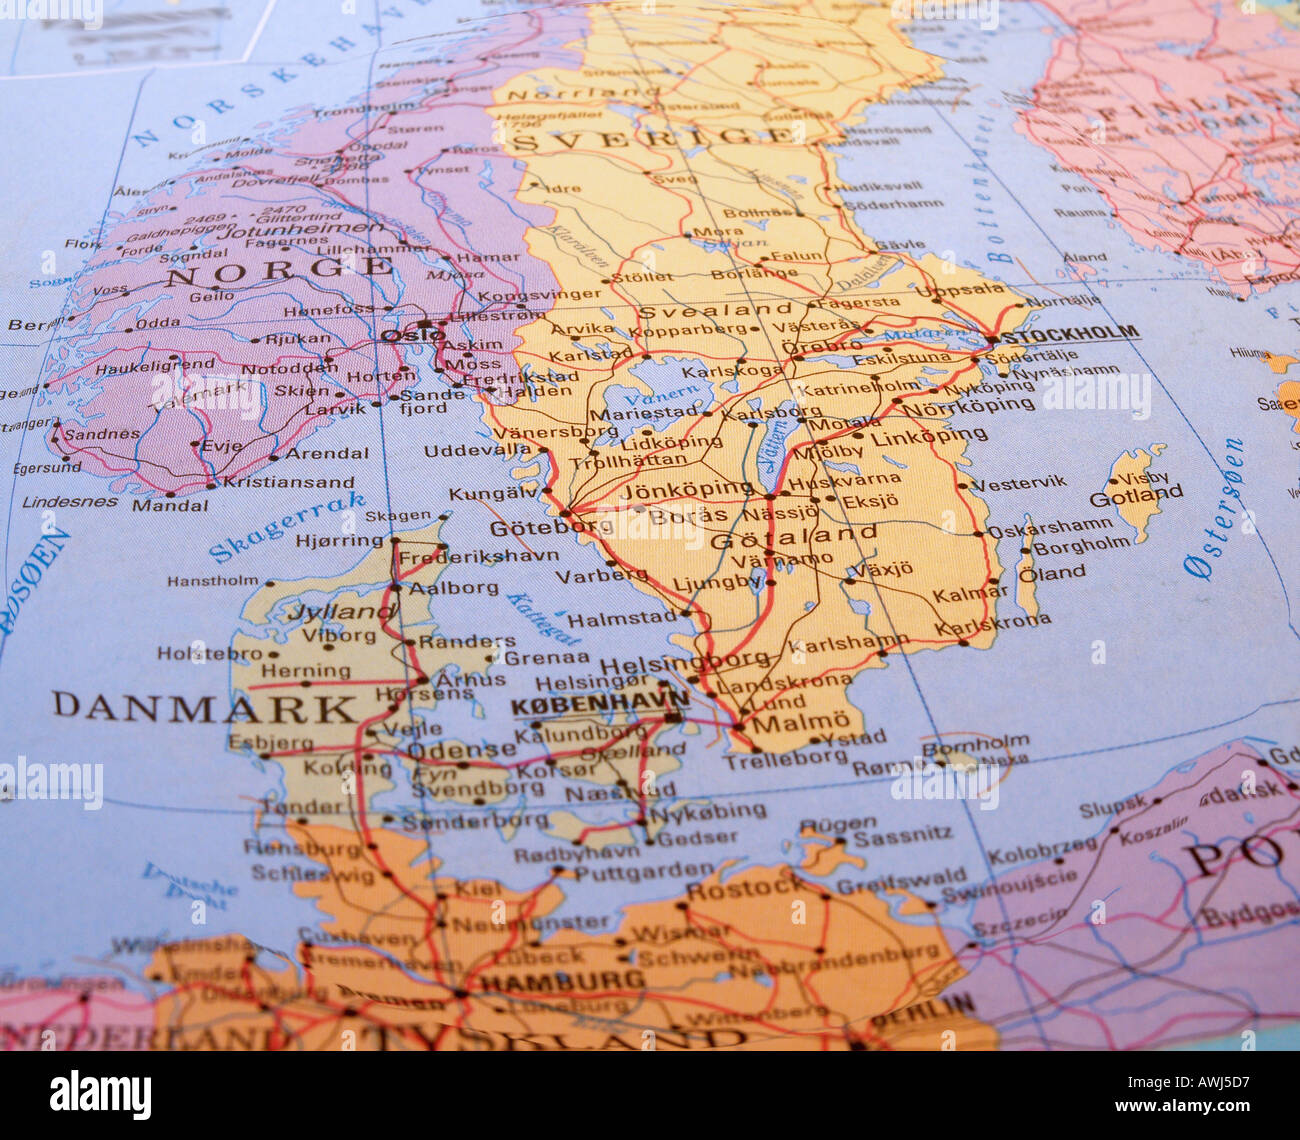 Denmark Map Of Scandinavia Stock Photo Royalty Free Image - Map of scandinavia